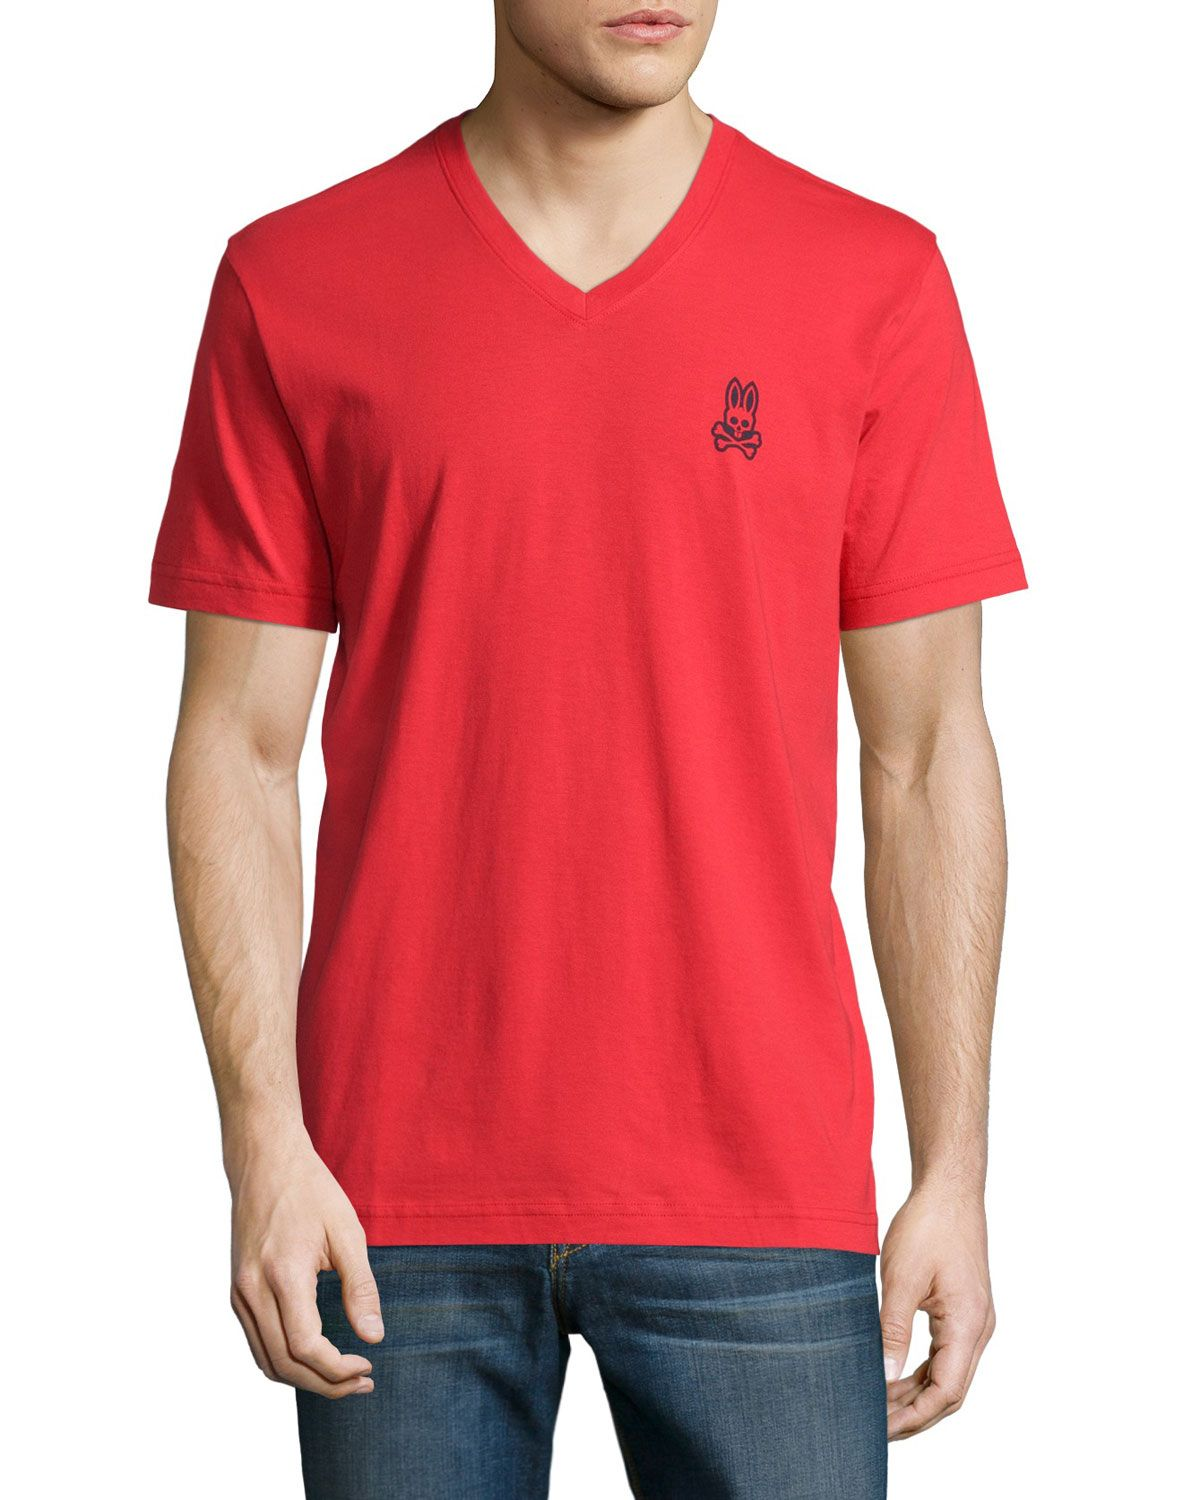 red polo v neck t shirt